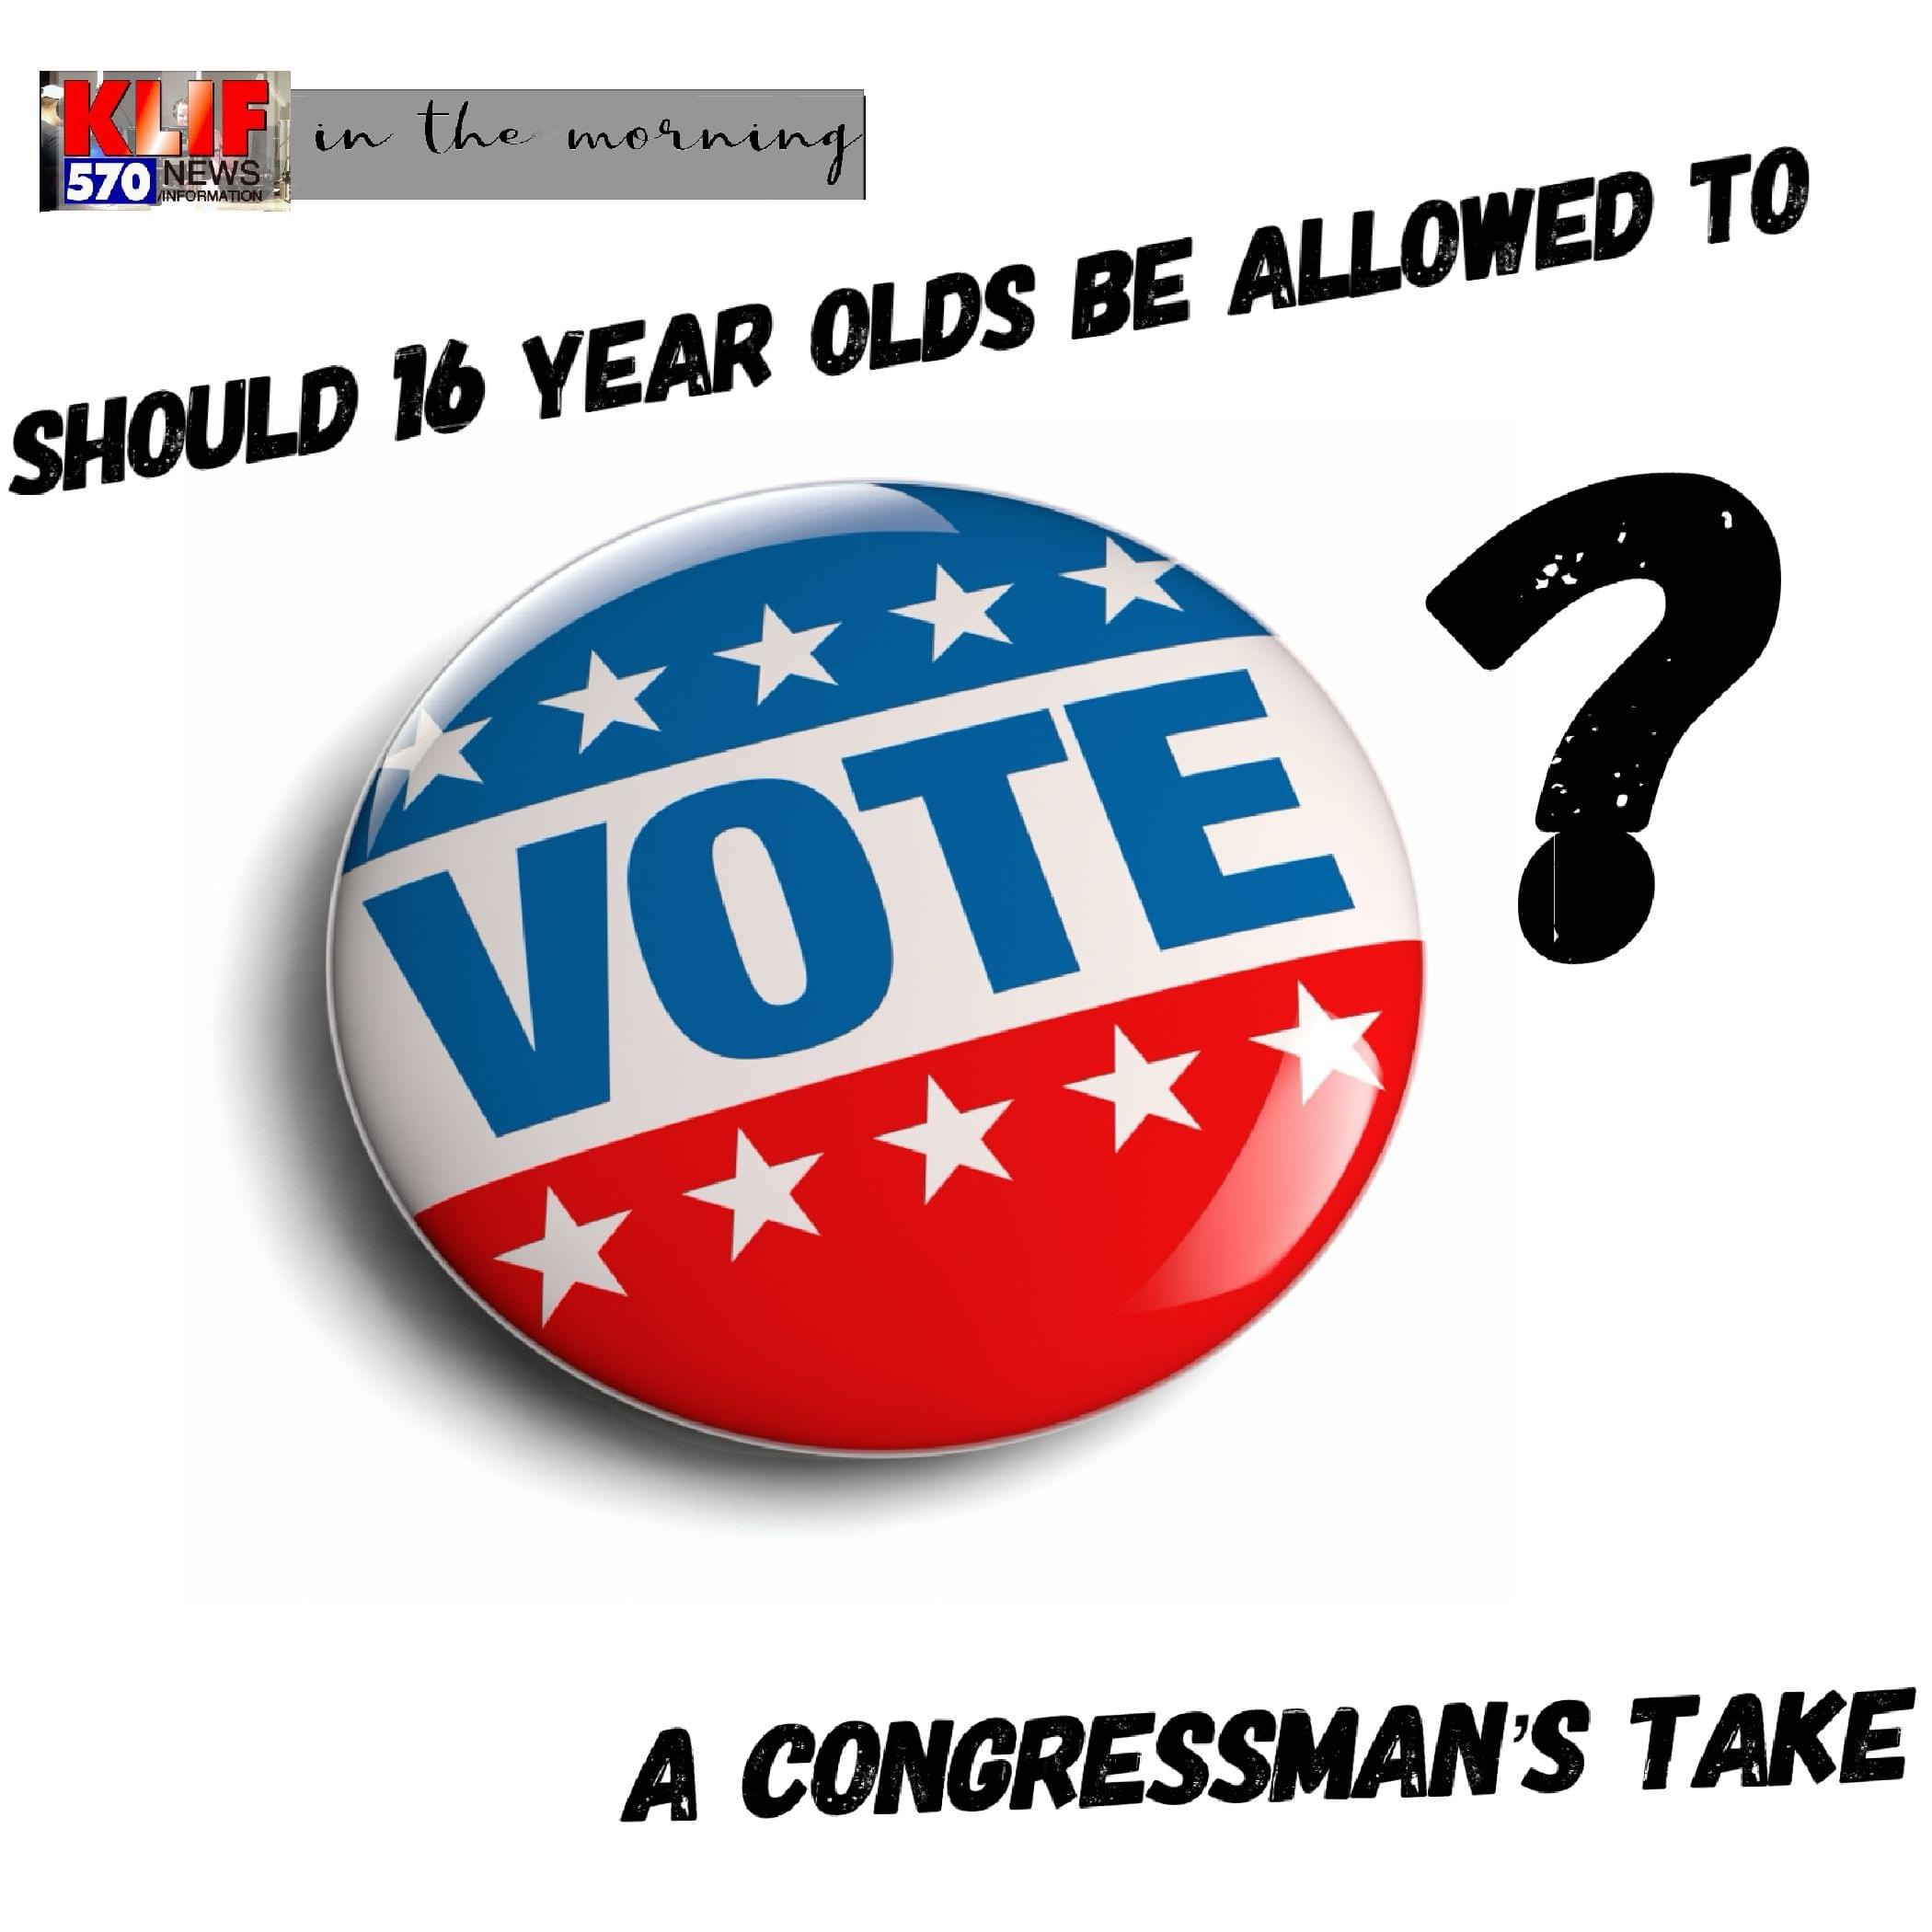 Should 16 Year Olds Be Allowed to Vote?